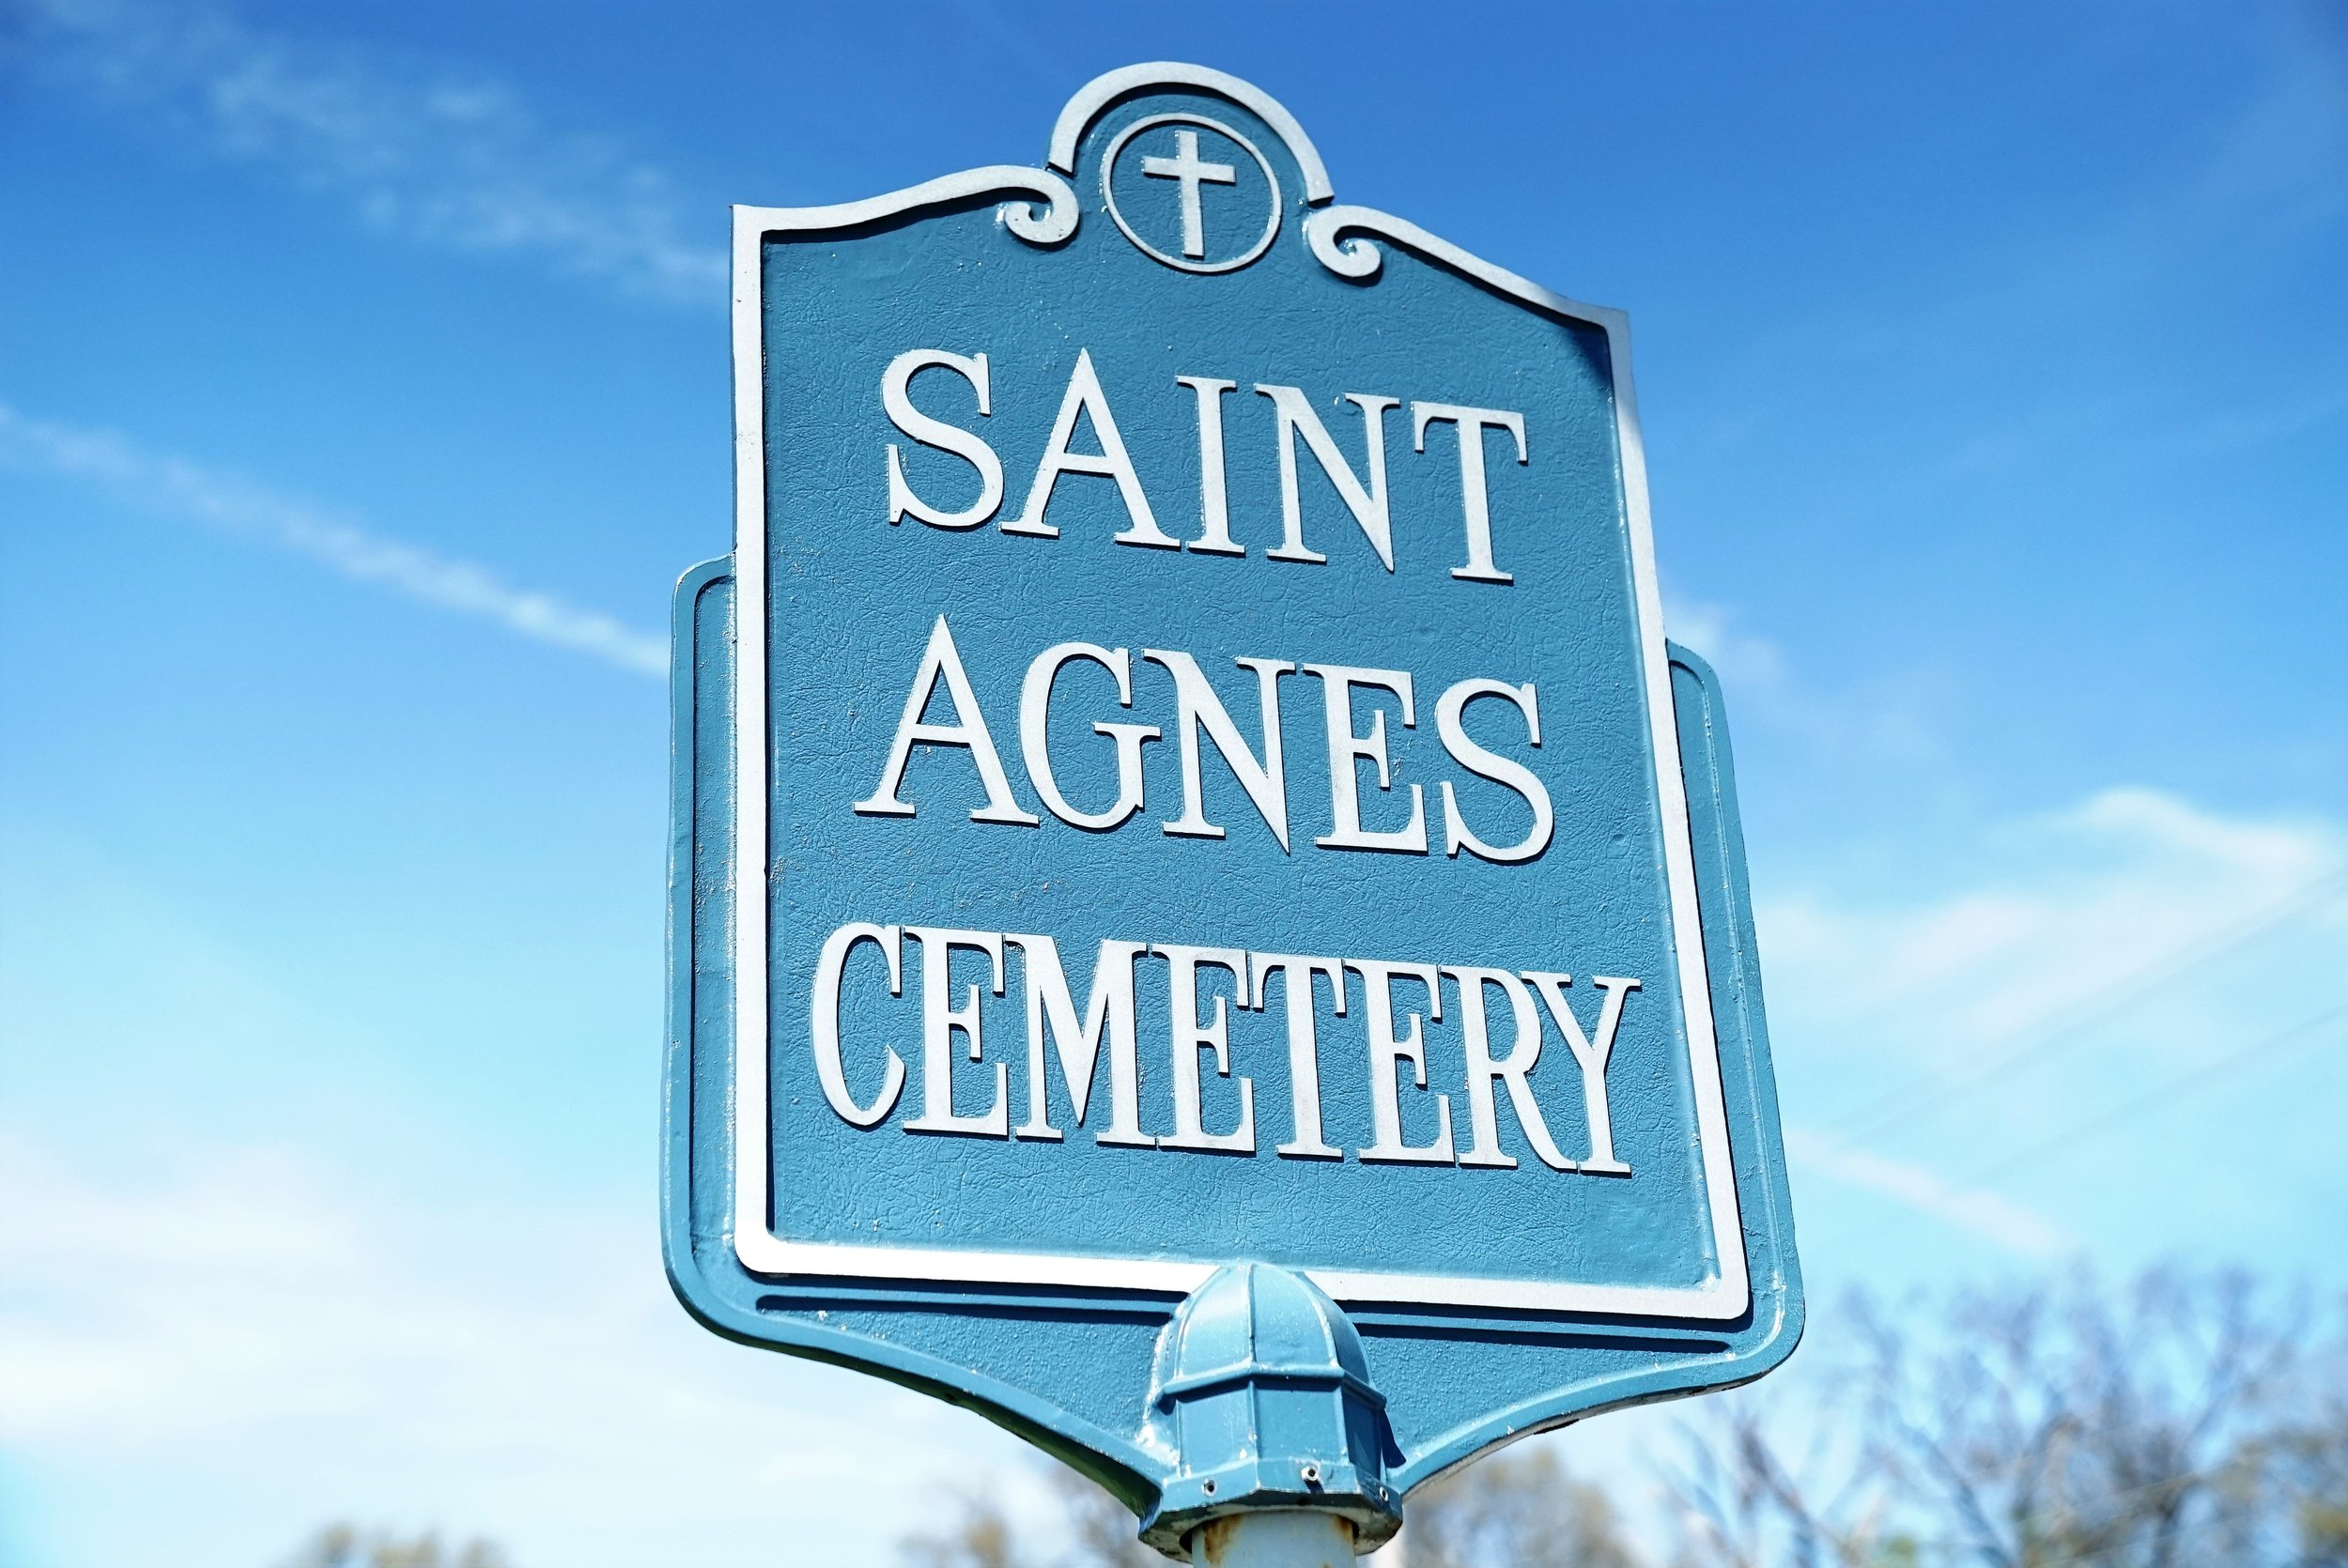 Saint Agnes Cemetery sign. West Chester, Pennsylvania.